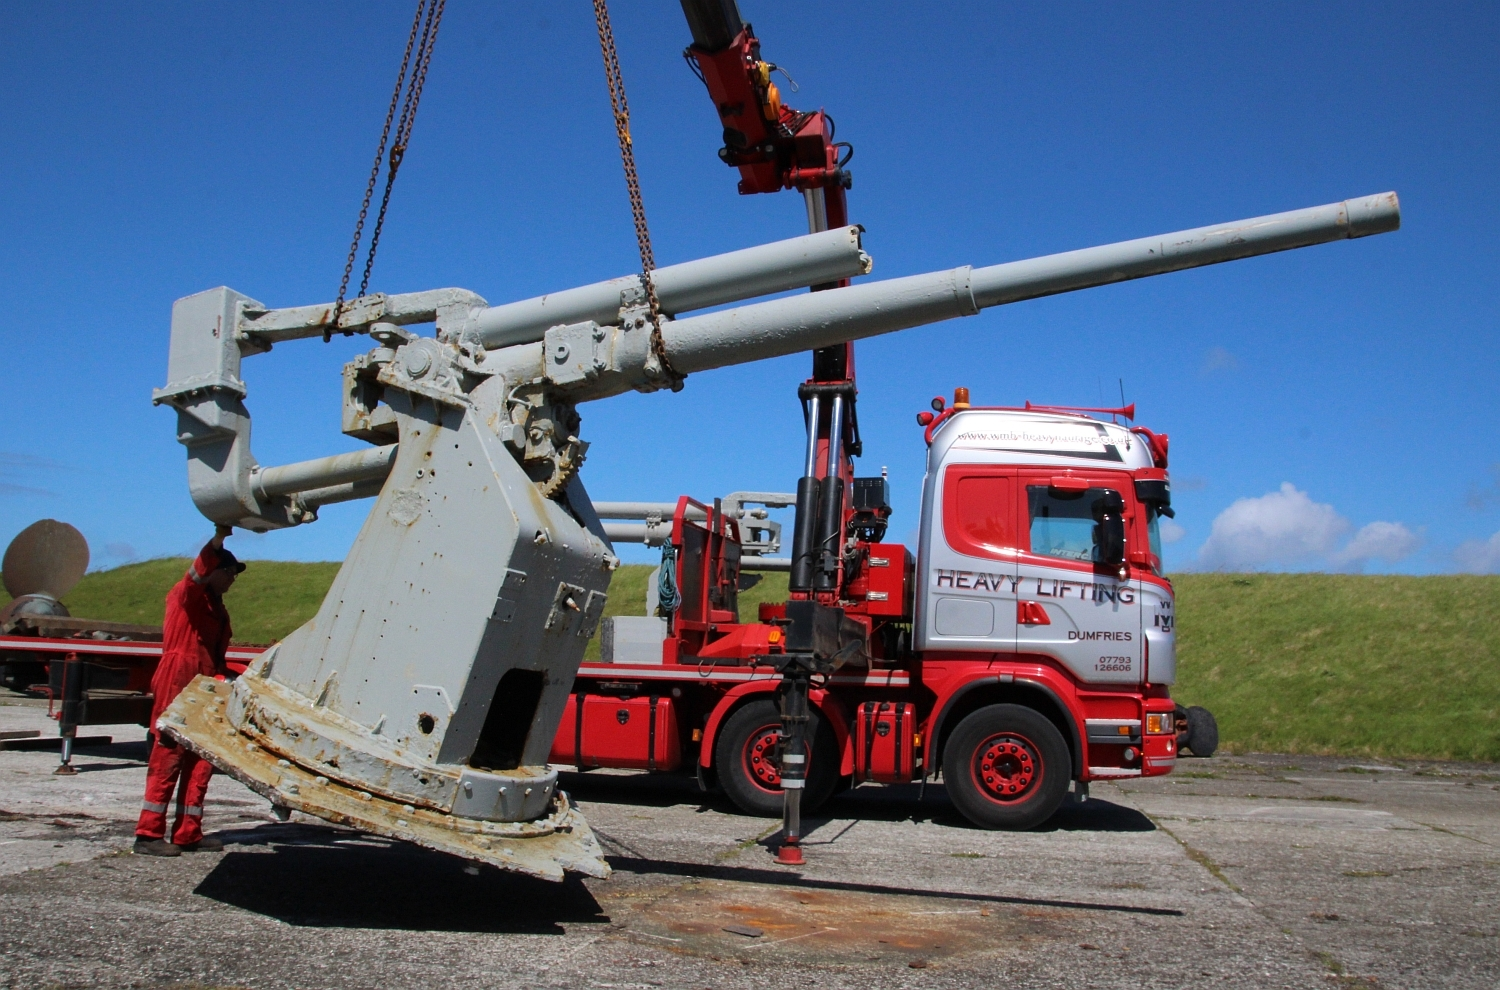 One of the anti-aircraft guns embarking on its journey from Orkney to Dumfries. Photo by Barry Jones